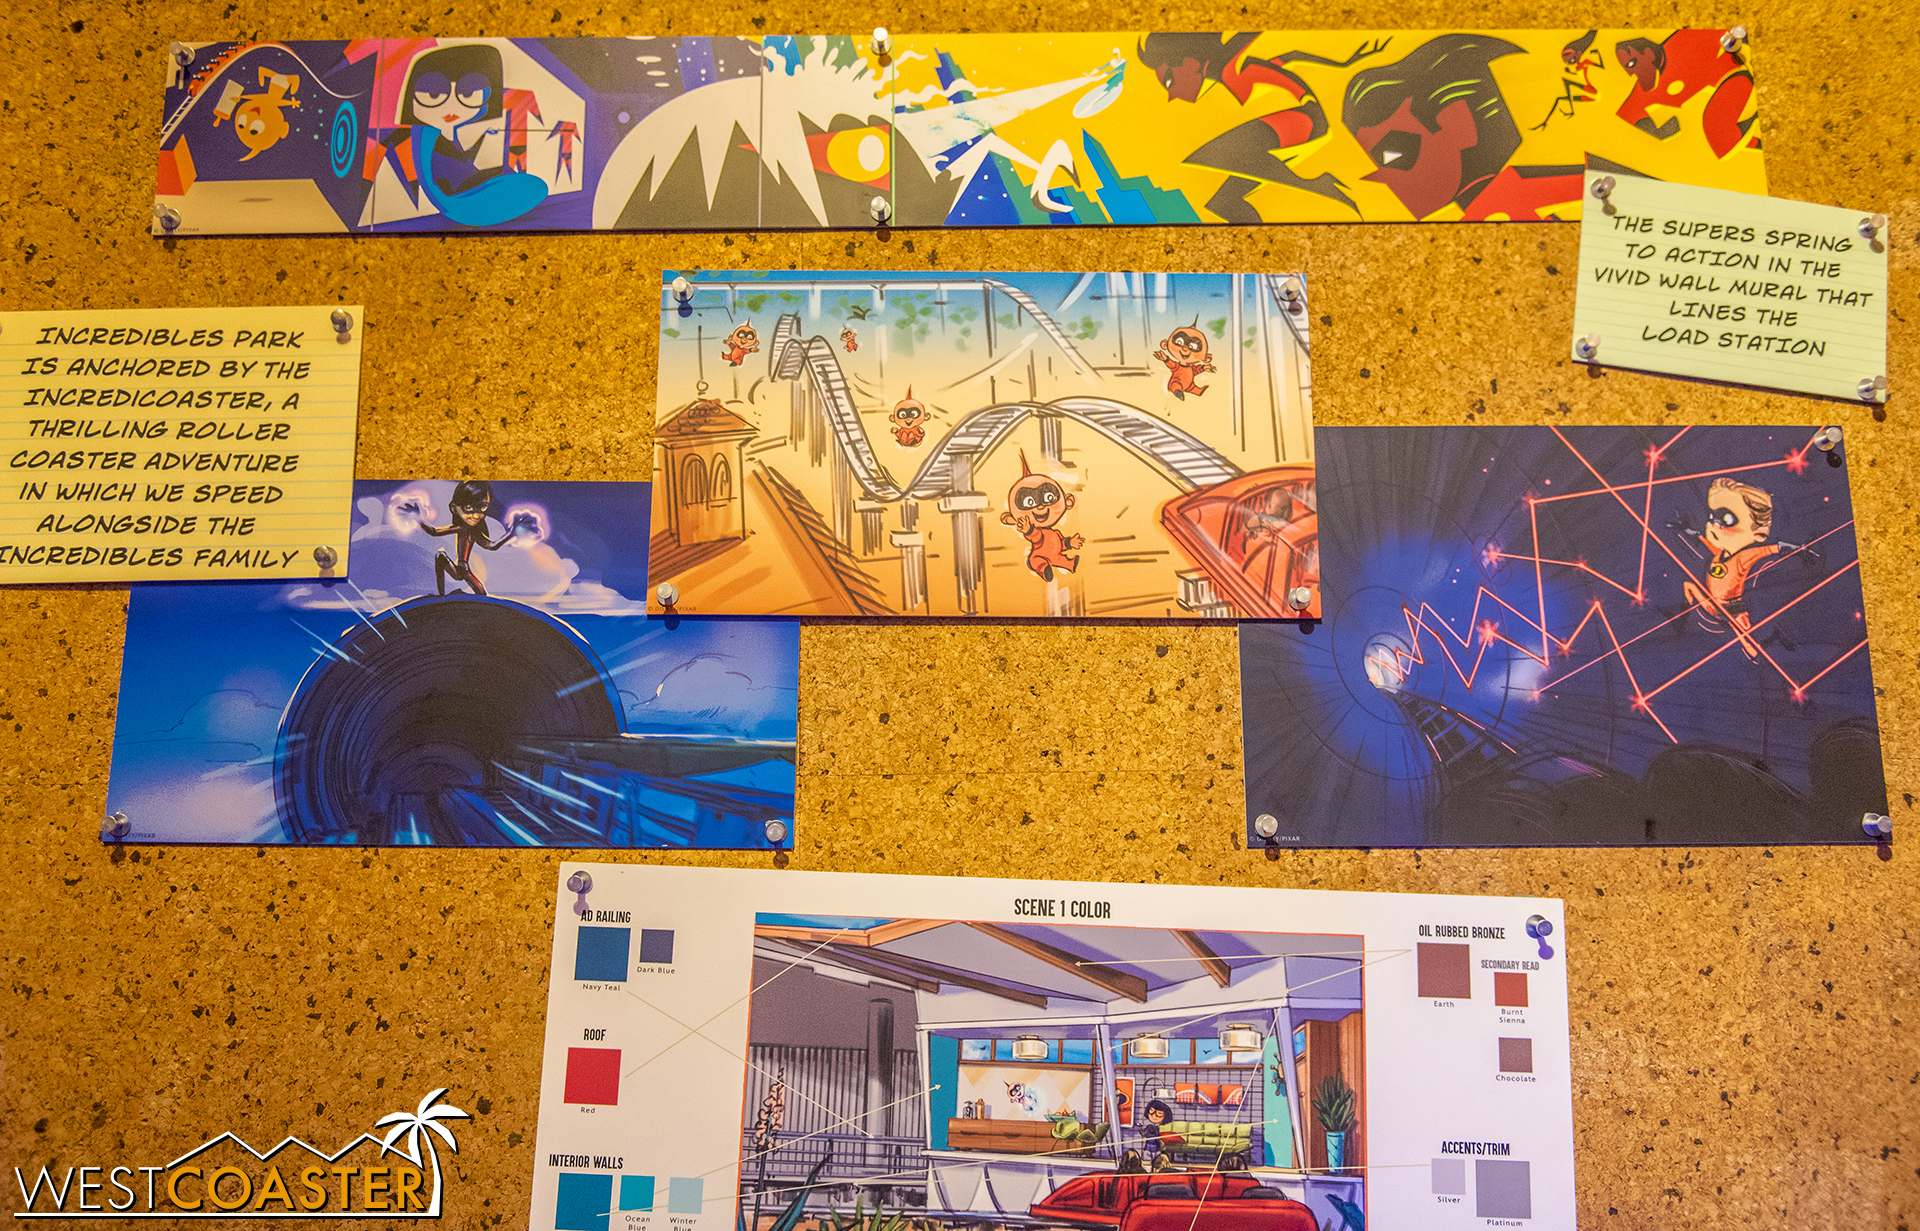 And certain scenes on the Incredicoaster.  The track and layout remain the same, but the experience will definitely be different (like Guardians vs Tower of Terror).